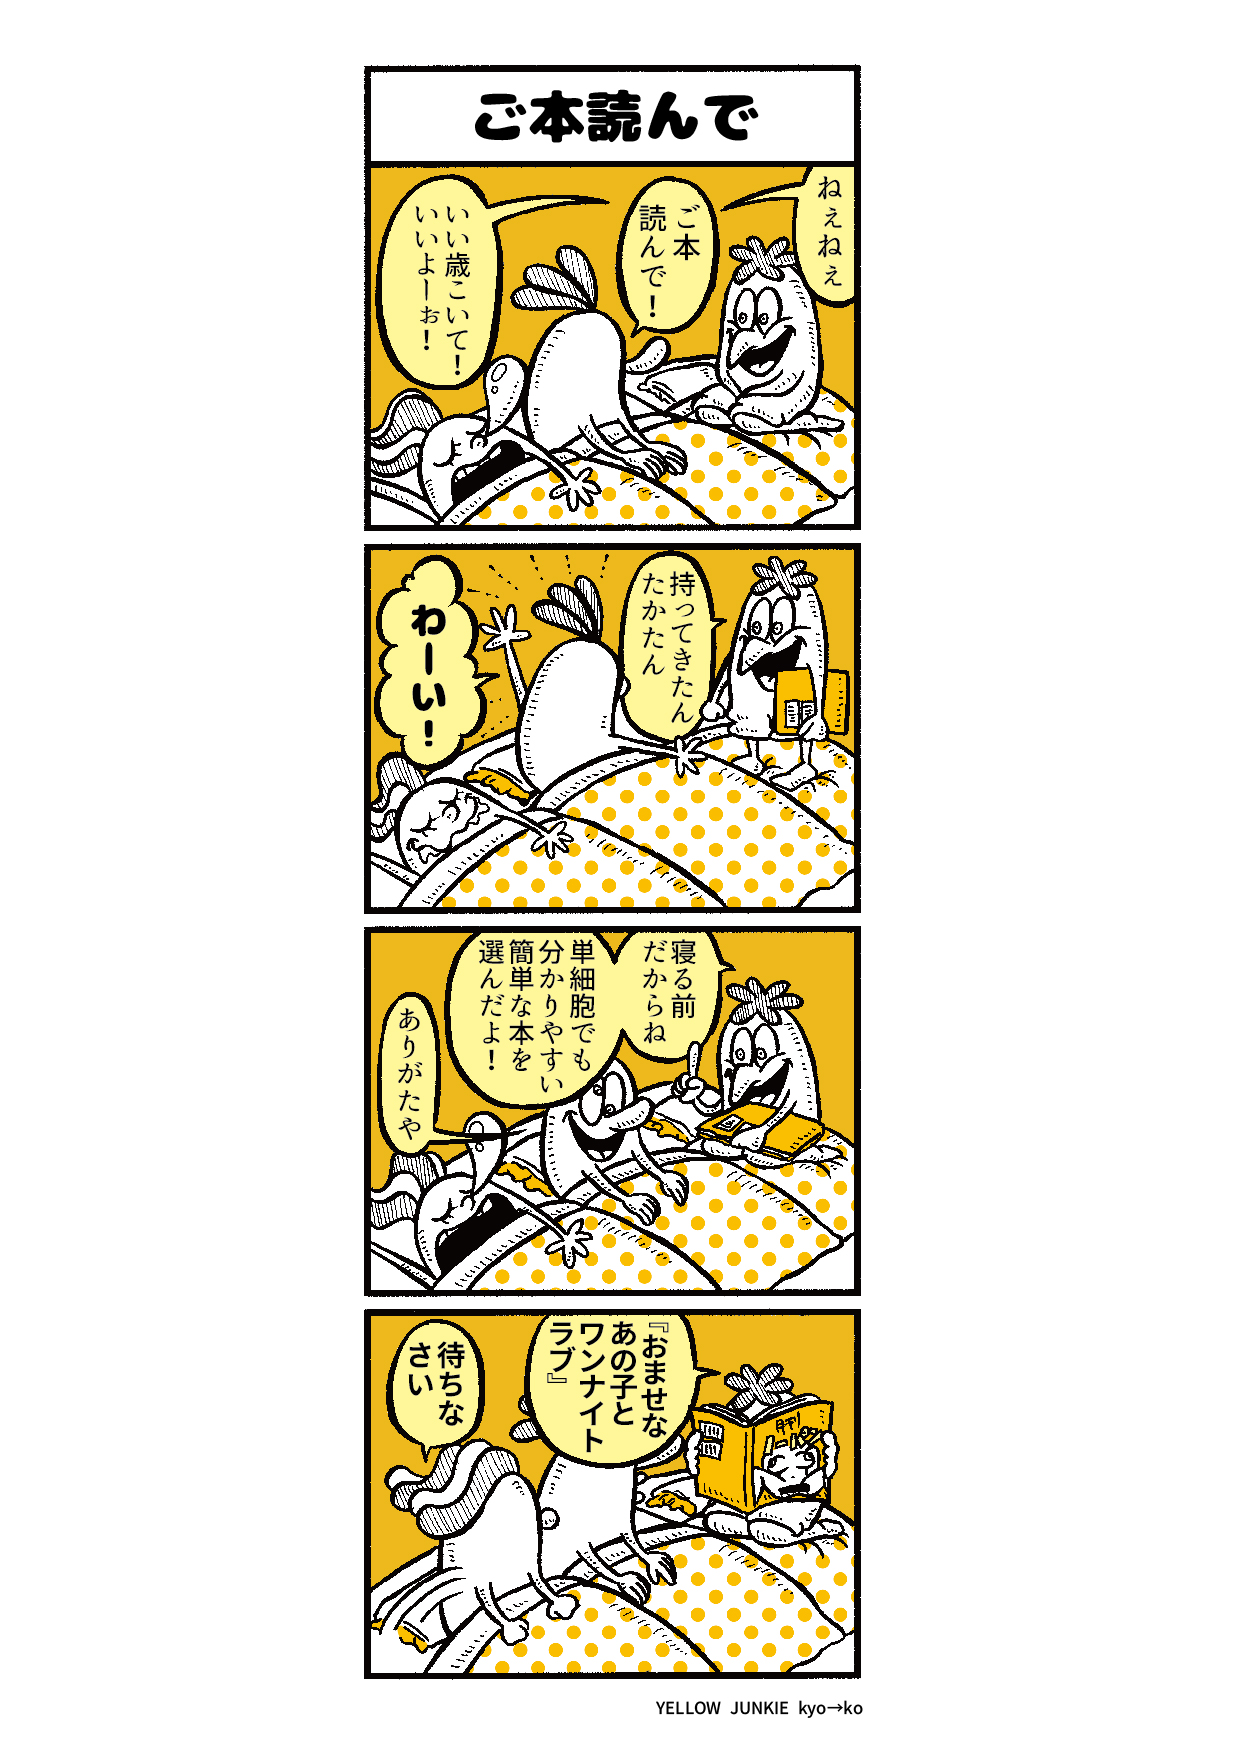 YELLOW JUNKIE「40話:ご本読んで」